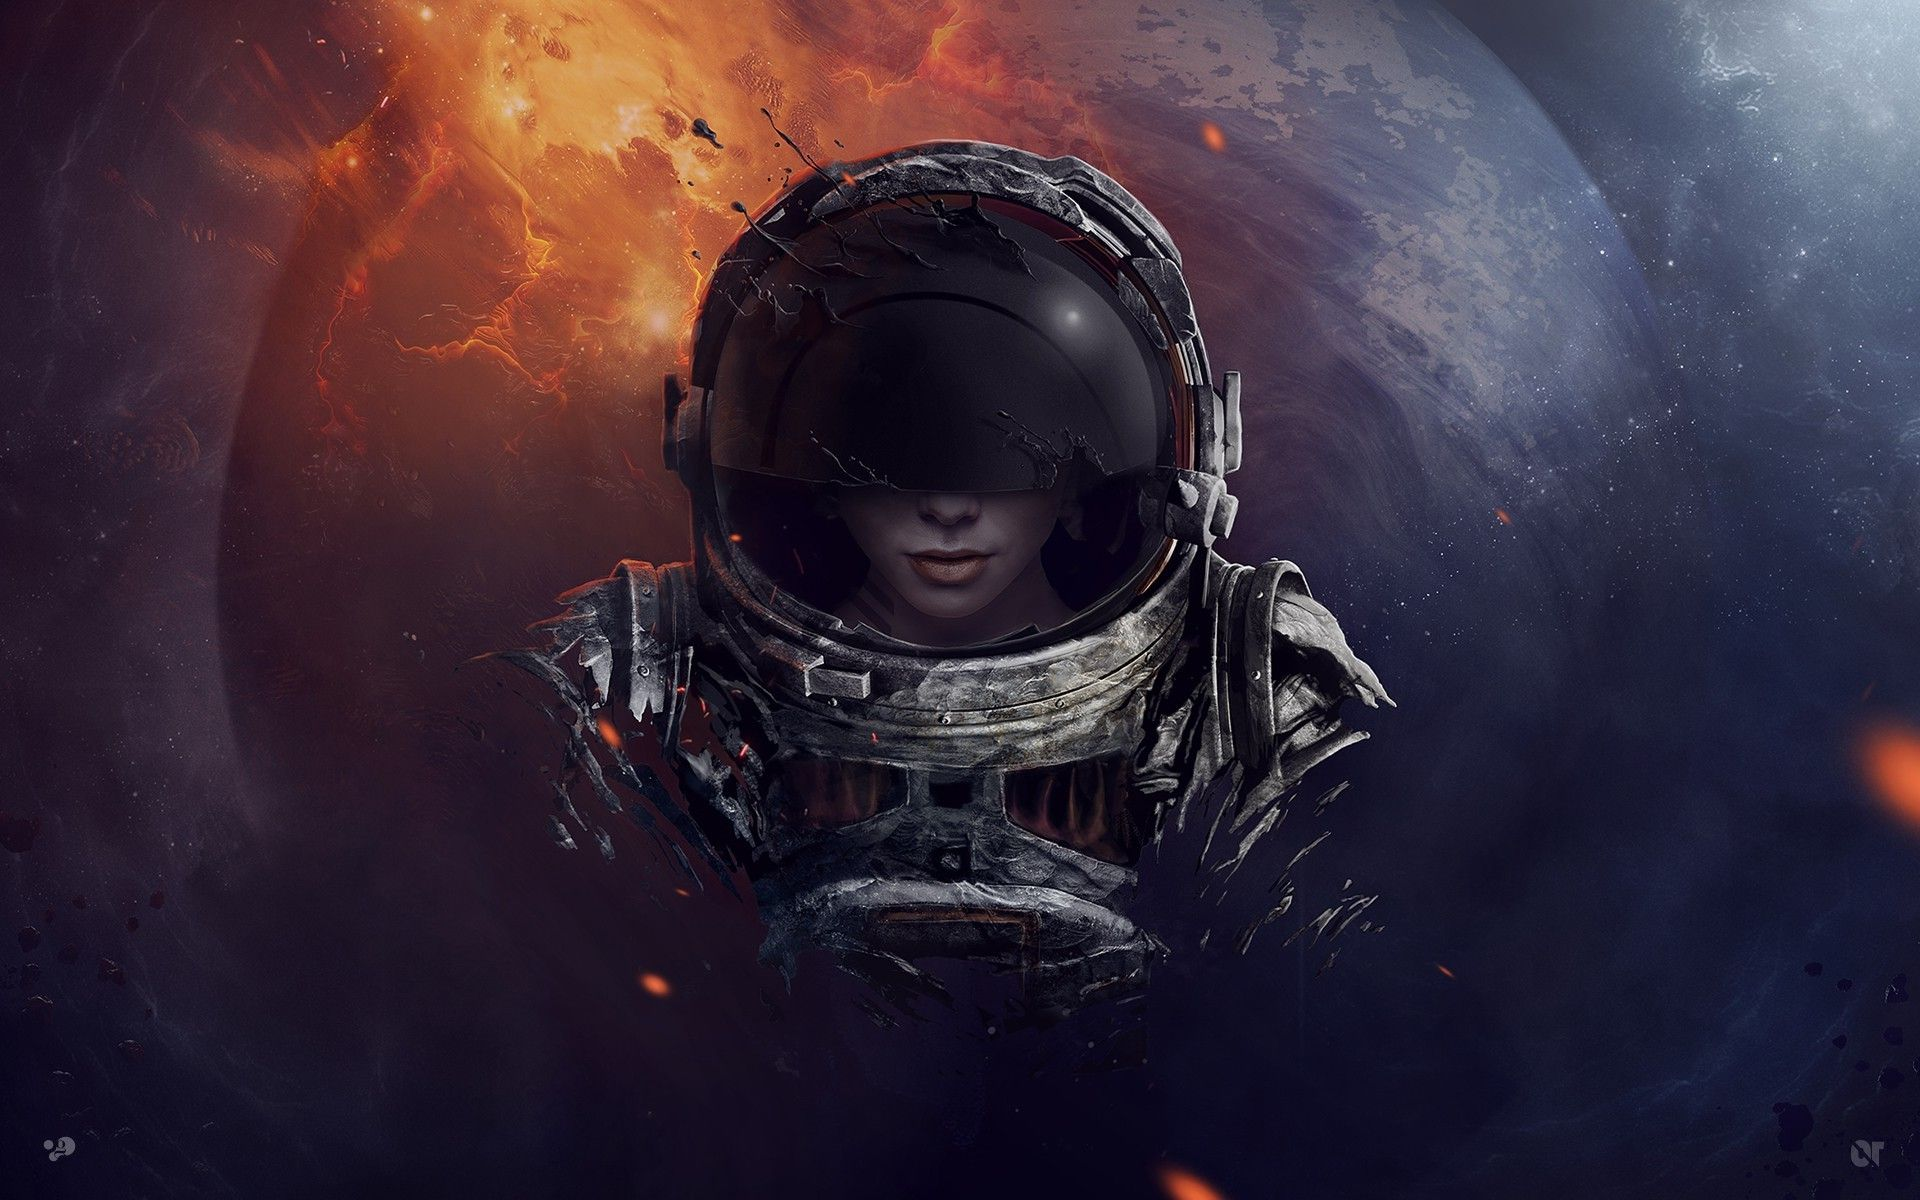 Iphone D Edm Surreal Astronaut Wallpapers High Quality Resolution For